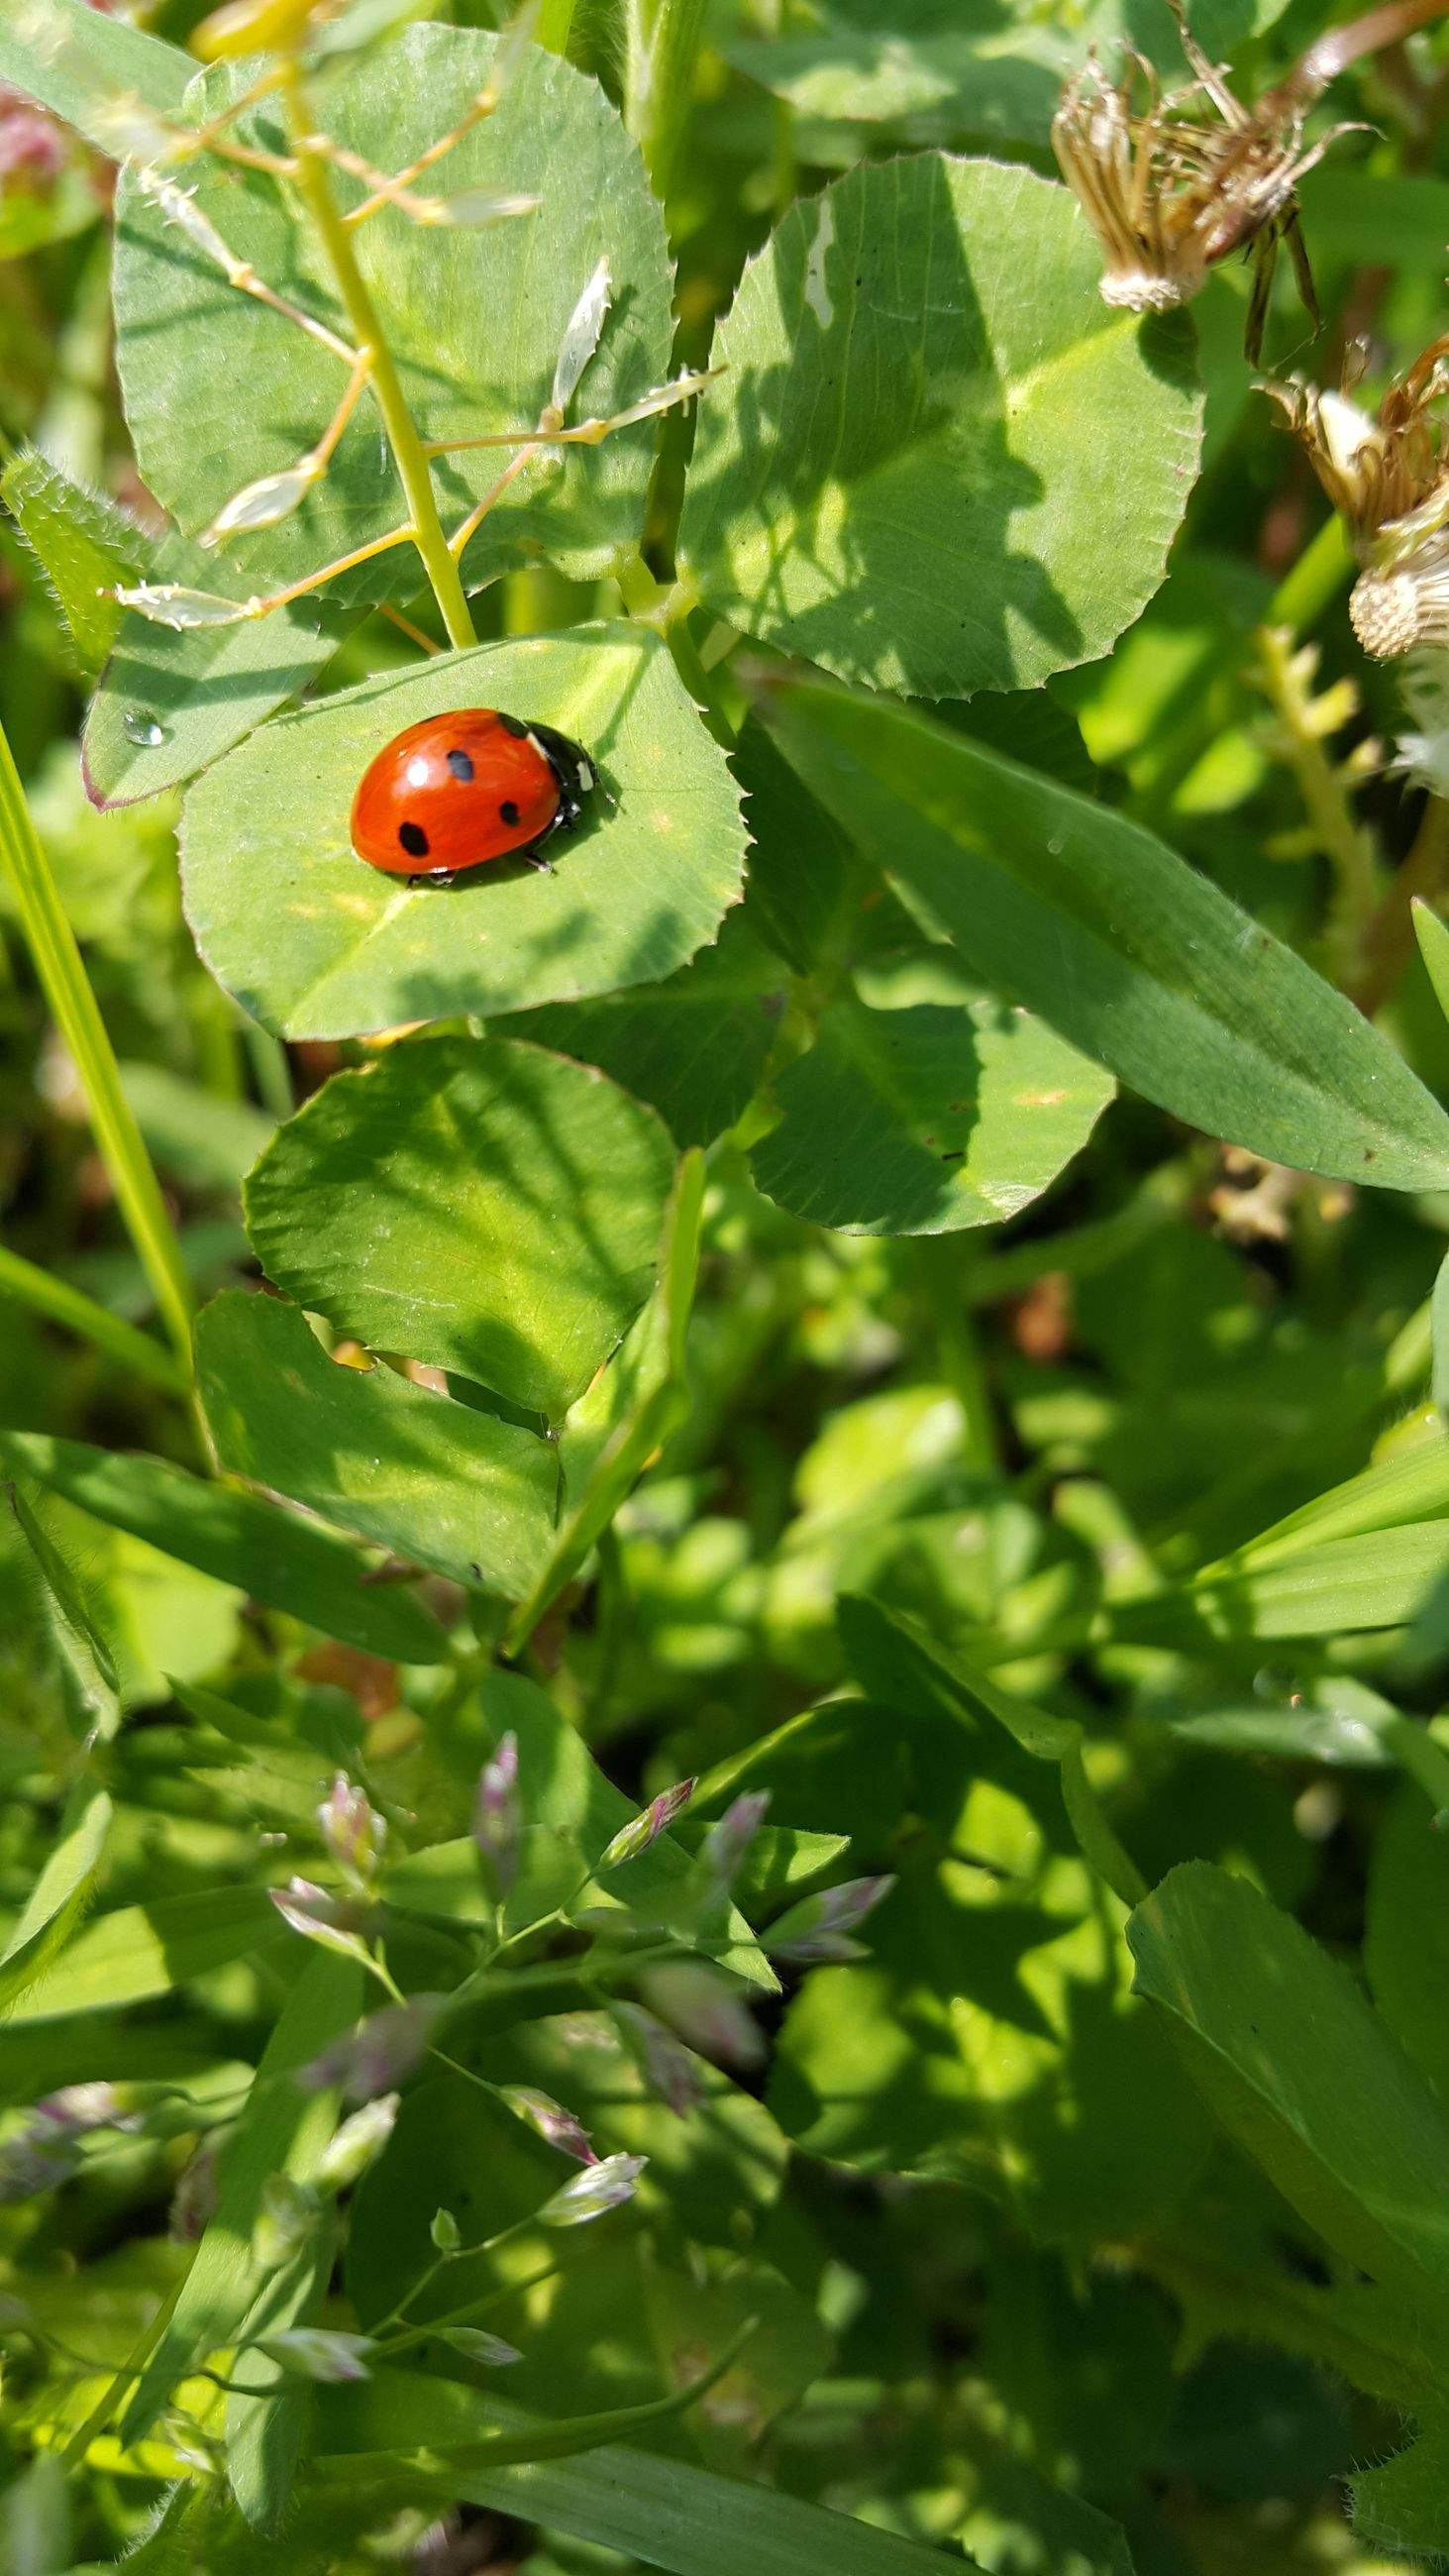 insect, animals in the wild, animal themes, leaf, wildlife, one animal, green color, ladybug, close-up, growth, plant, nature, red, beauty in nature, focus on foreground, day, selective focus, freshness, no people, outdoors